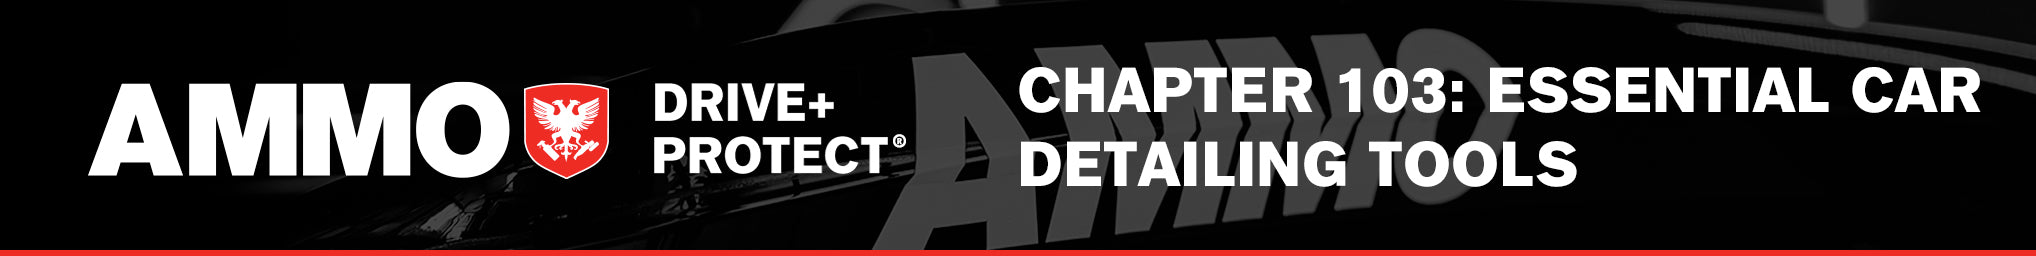 CHAPTER 103: ESSENTIAL CAR DETAILING TOOLS